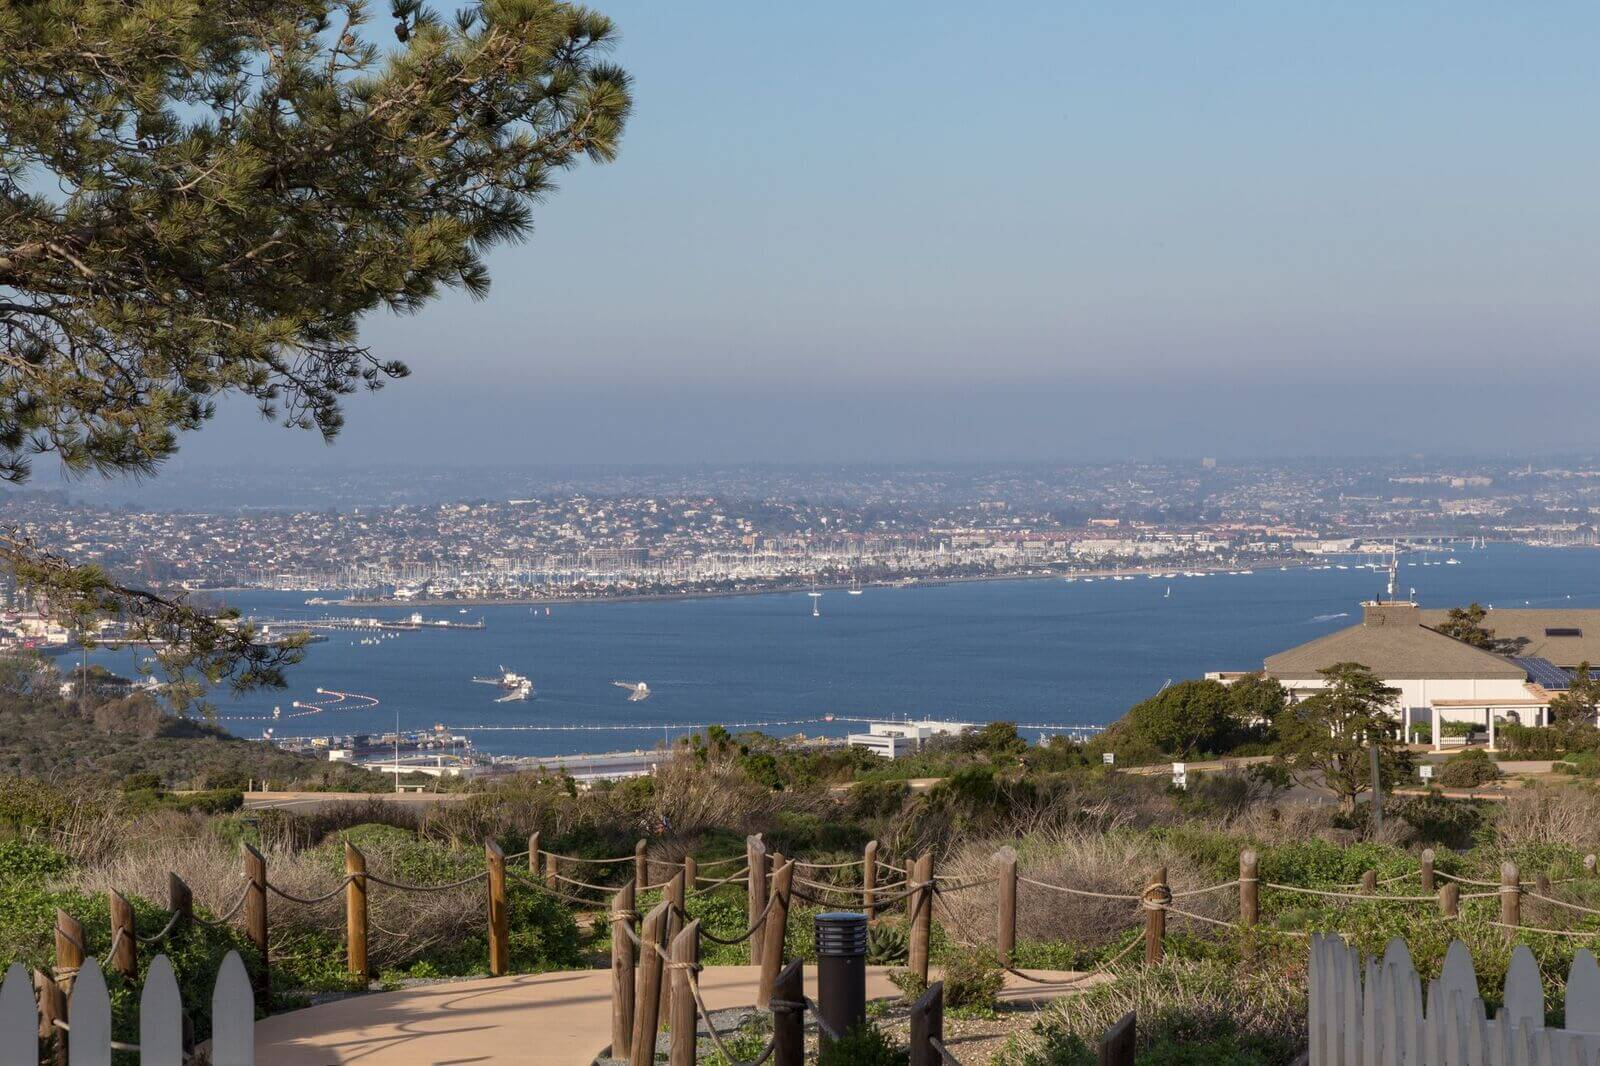 Trail in Point Loma, California